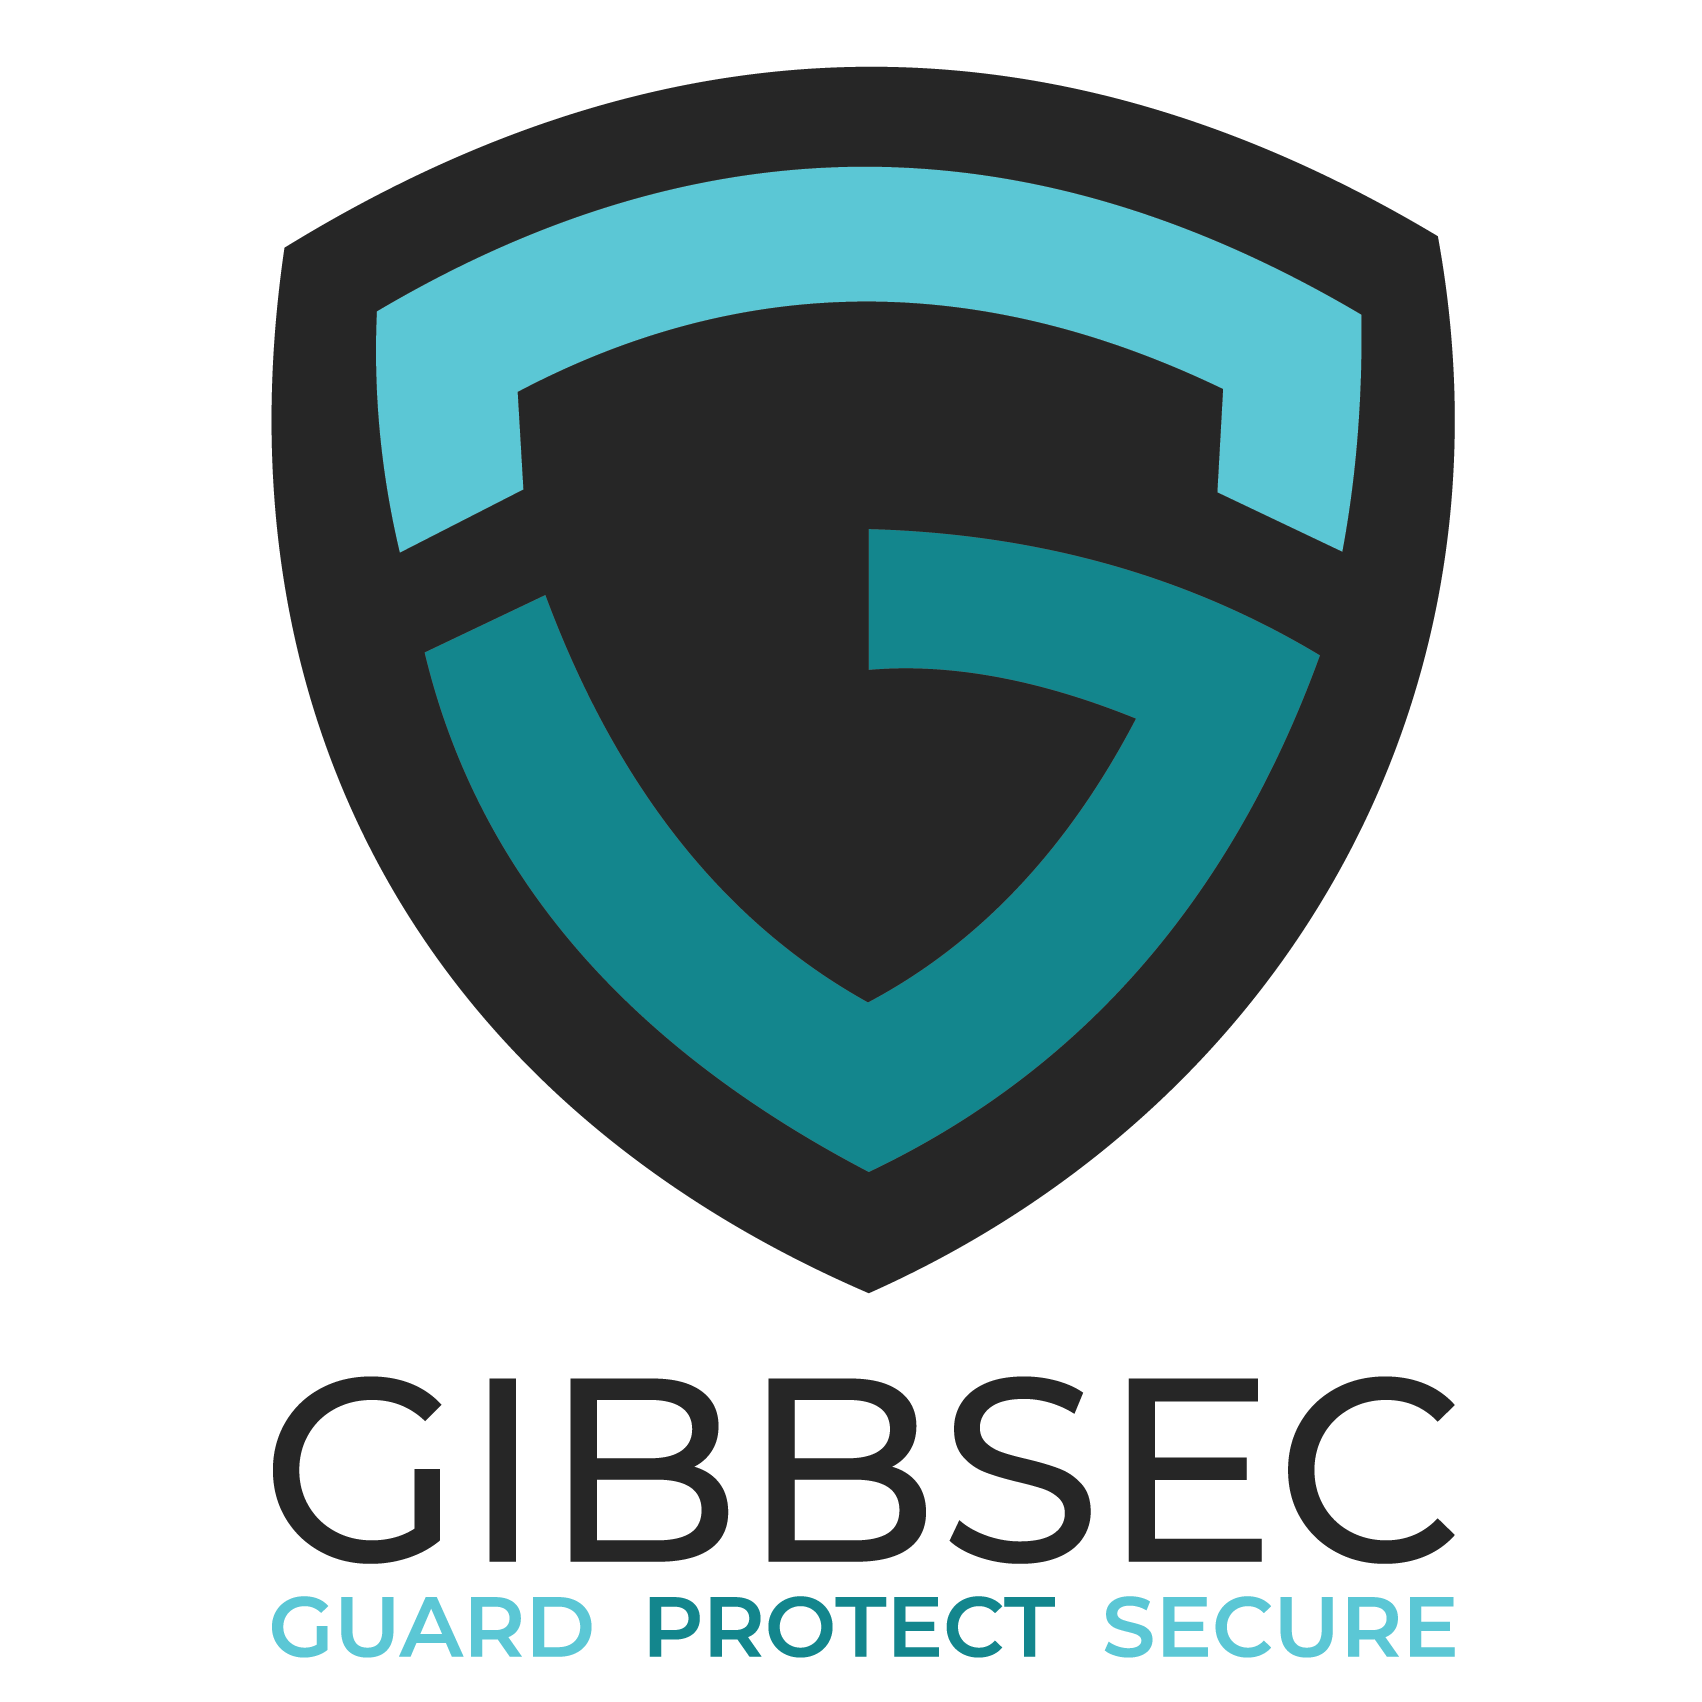 Gibbsec Security Services across Castlereagh